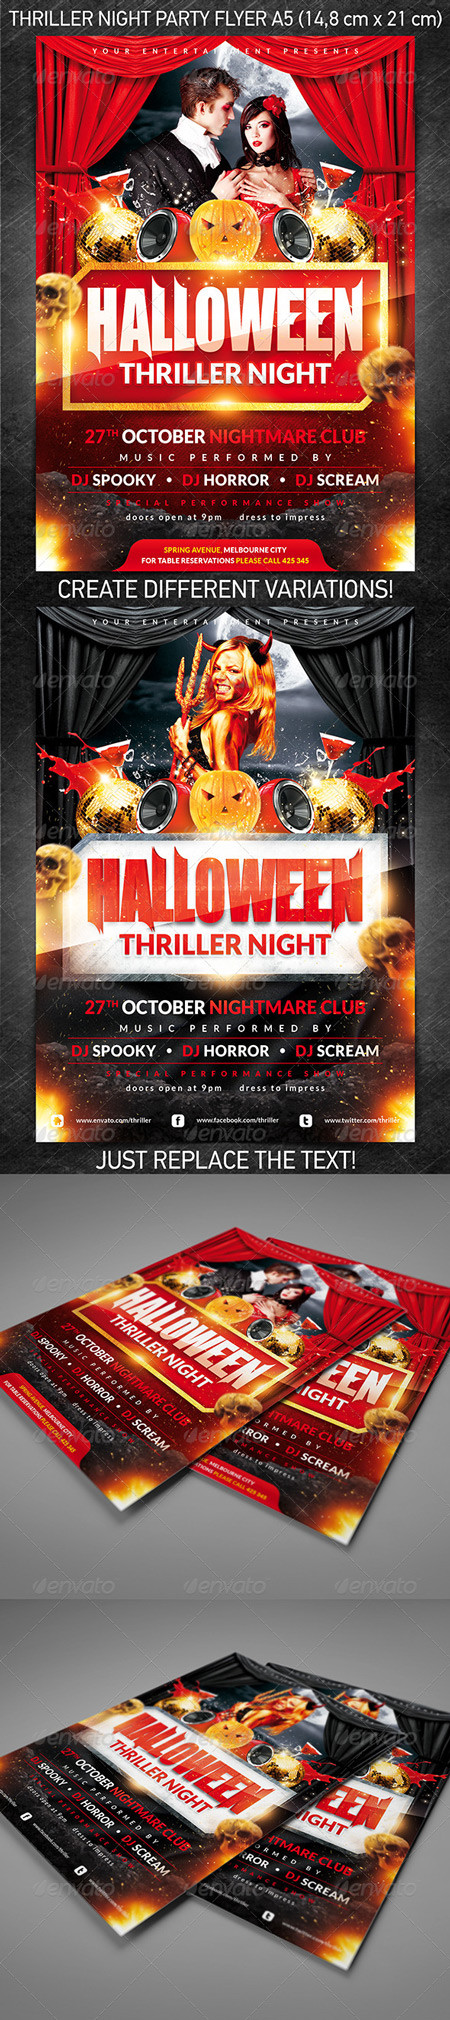 GraphicRiver Halloween Thriller Night Party Flyer